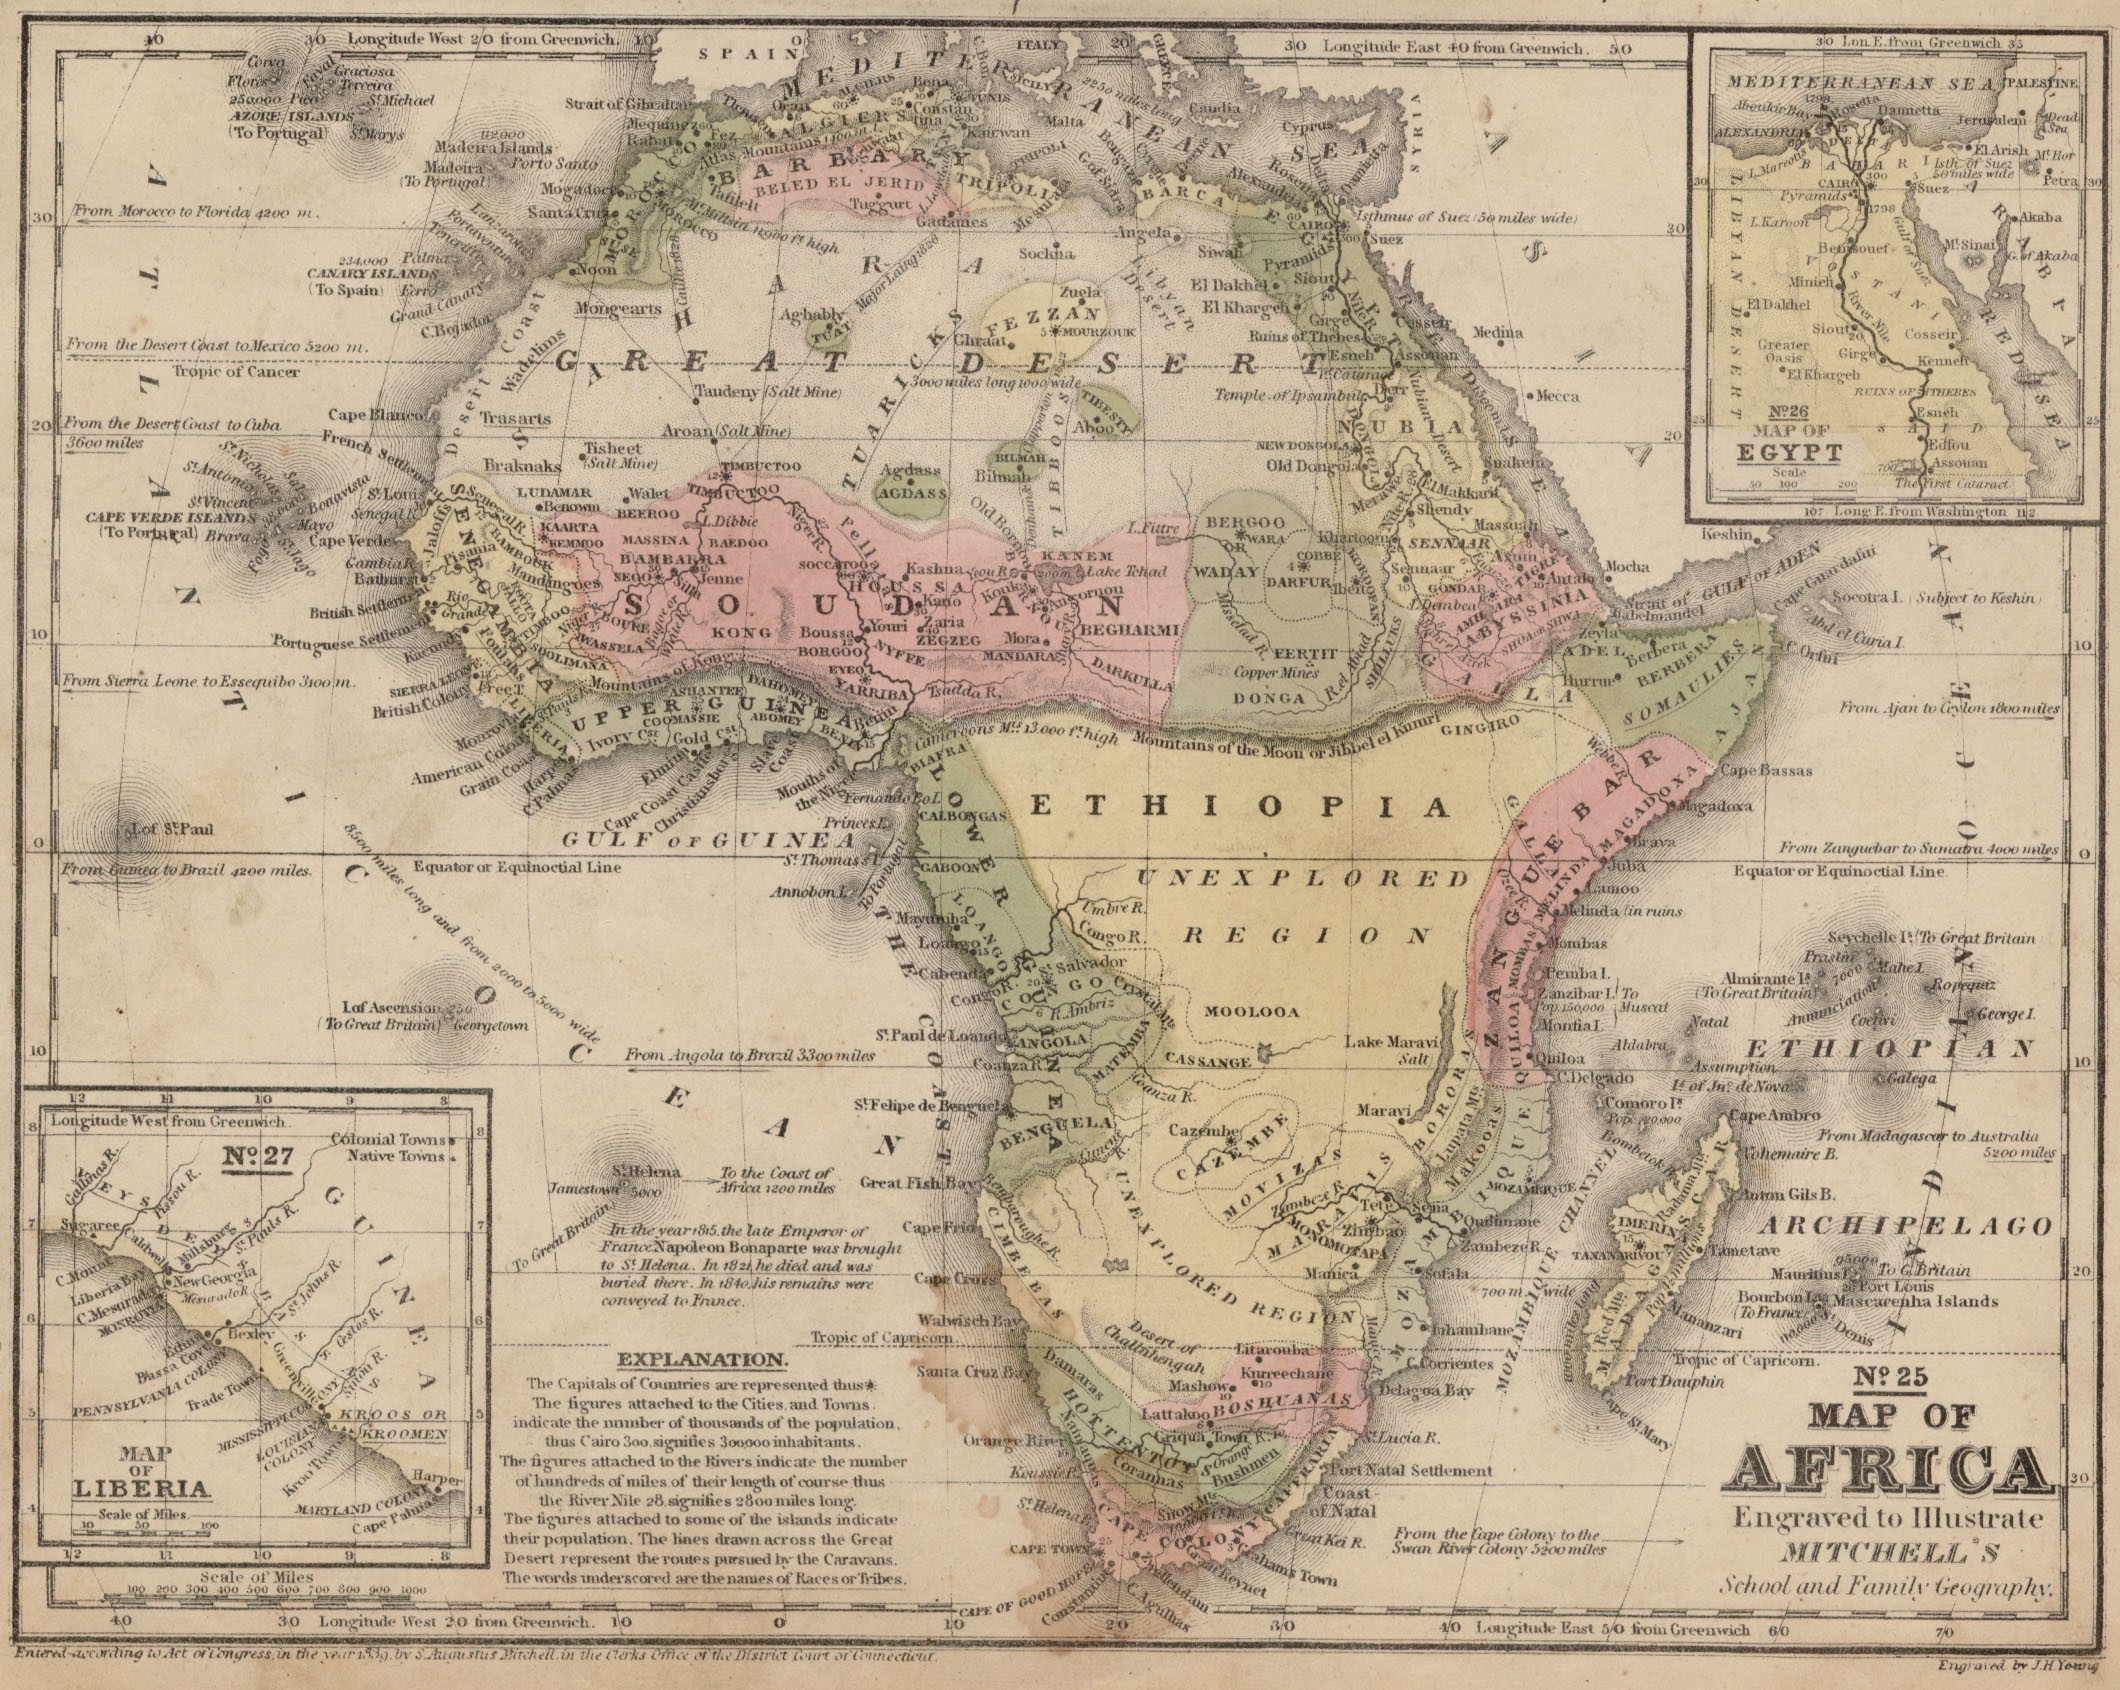 Map of Africa (1839) engraved to illustrate Mitc's ... Map Of Africa Numbers on map of ghana, map of continents, map of mediterranean, map of indonesia, map of saudi arabia, map of iran, map of middle east, map of yemen, map of uganda, map of morocco, map of ethiopia, map of world, map of tunisia, map of iraq, map of sudan, map of antarctica, map of libya, map of mali, map of tanzania, map of zimbabwe,